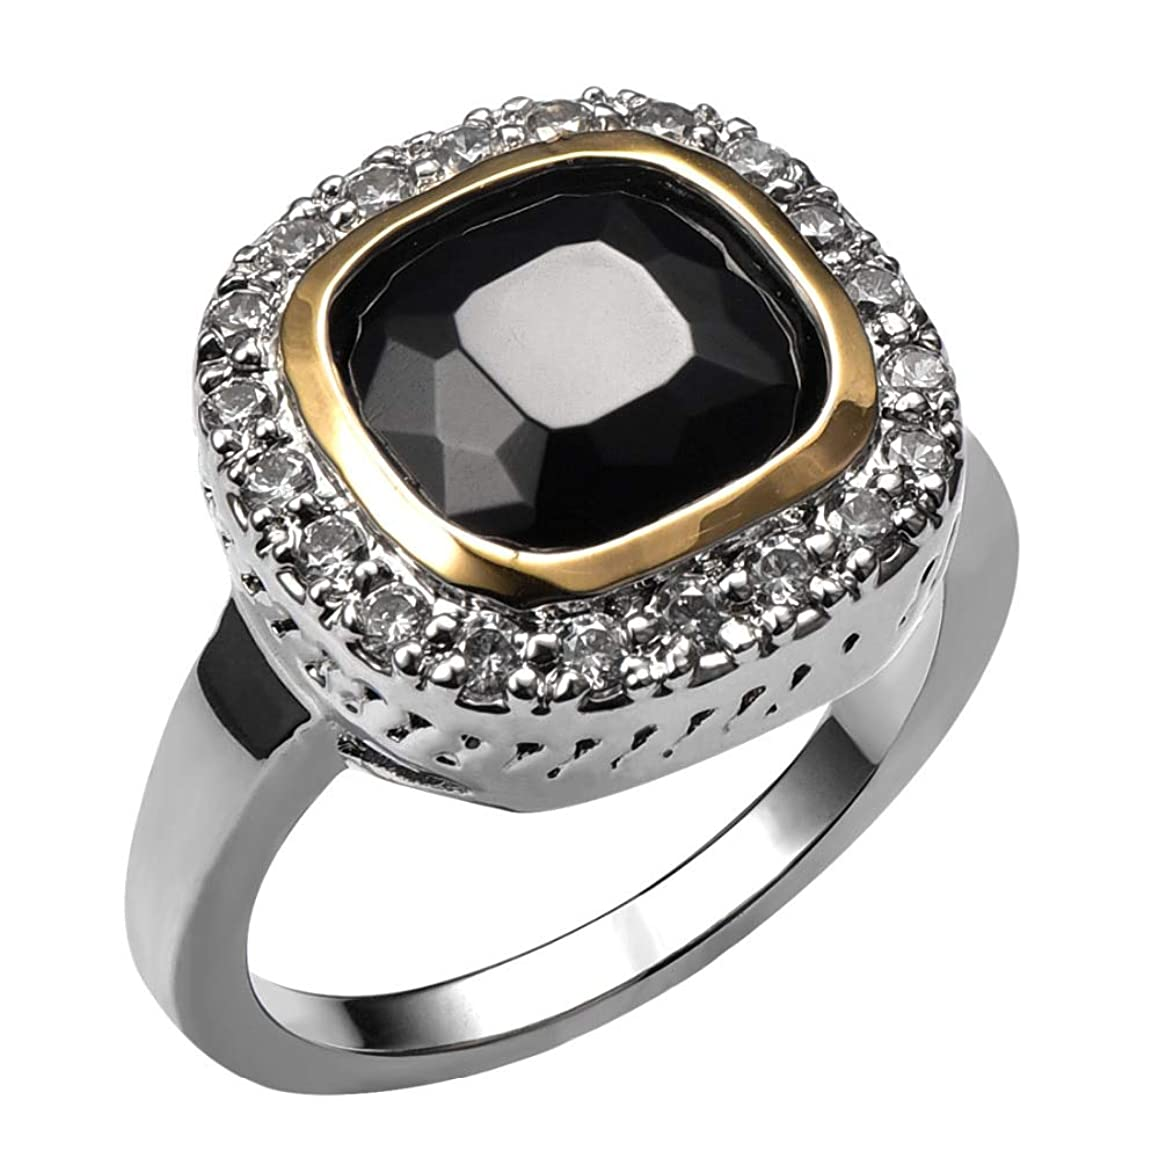 Black Onyx 925 Sterling Silver High Quantity Ring for Women Classic Fashion Jewelry Party Gift Size 6 7 8 9 10 F1459